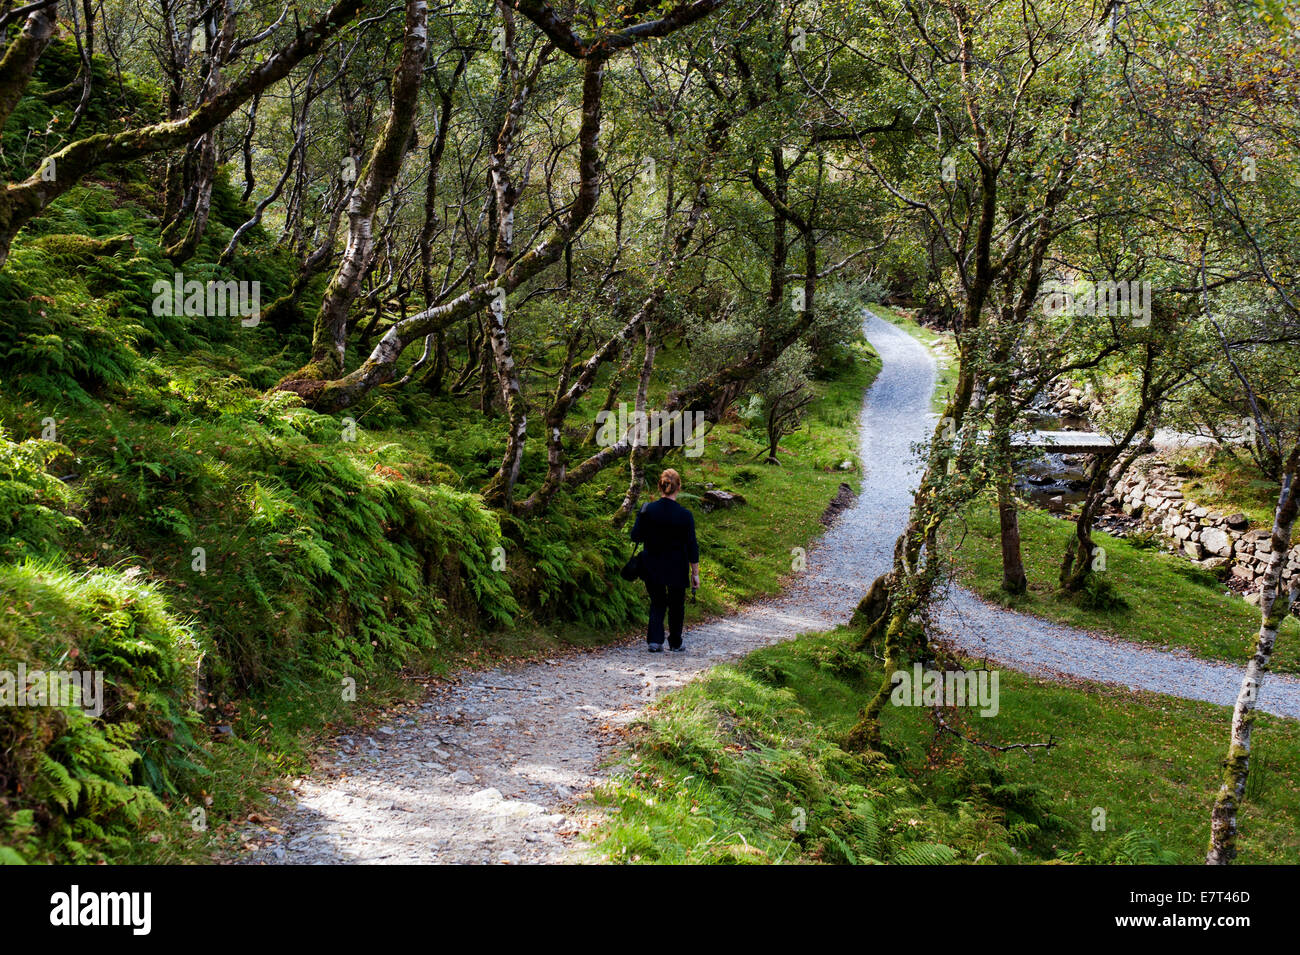 Woman walking alone through isolated forest track, County Donegal, Ireland - Stock Image